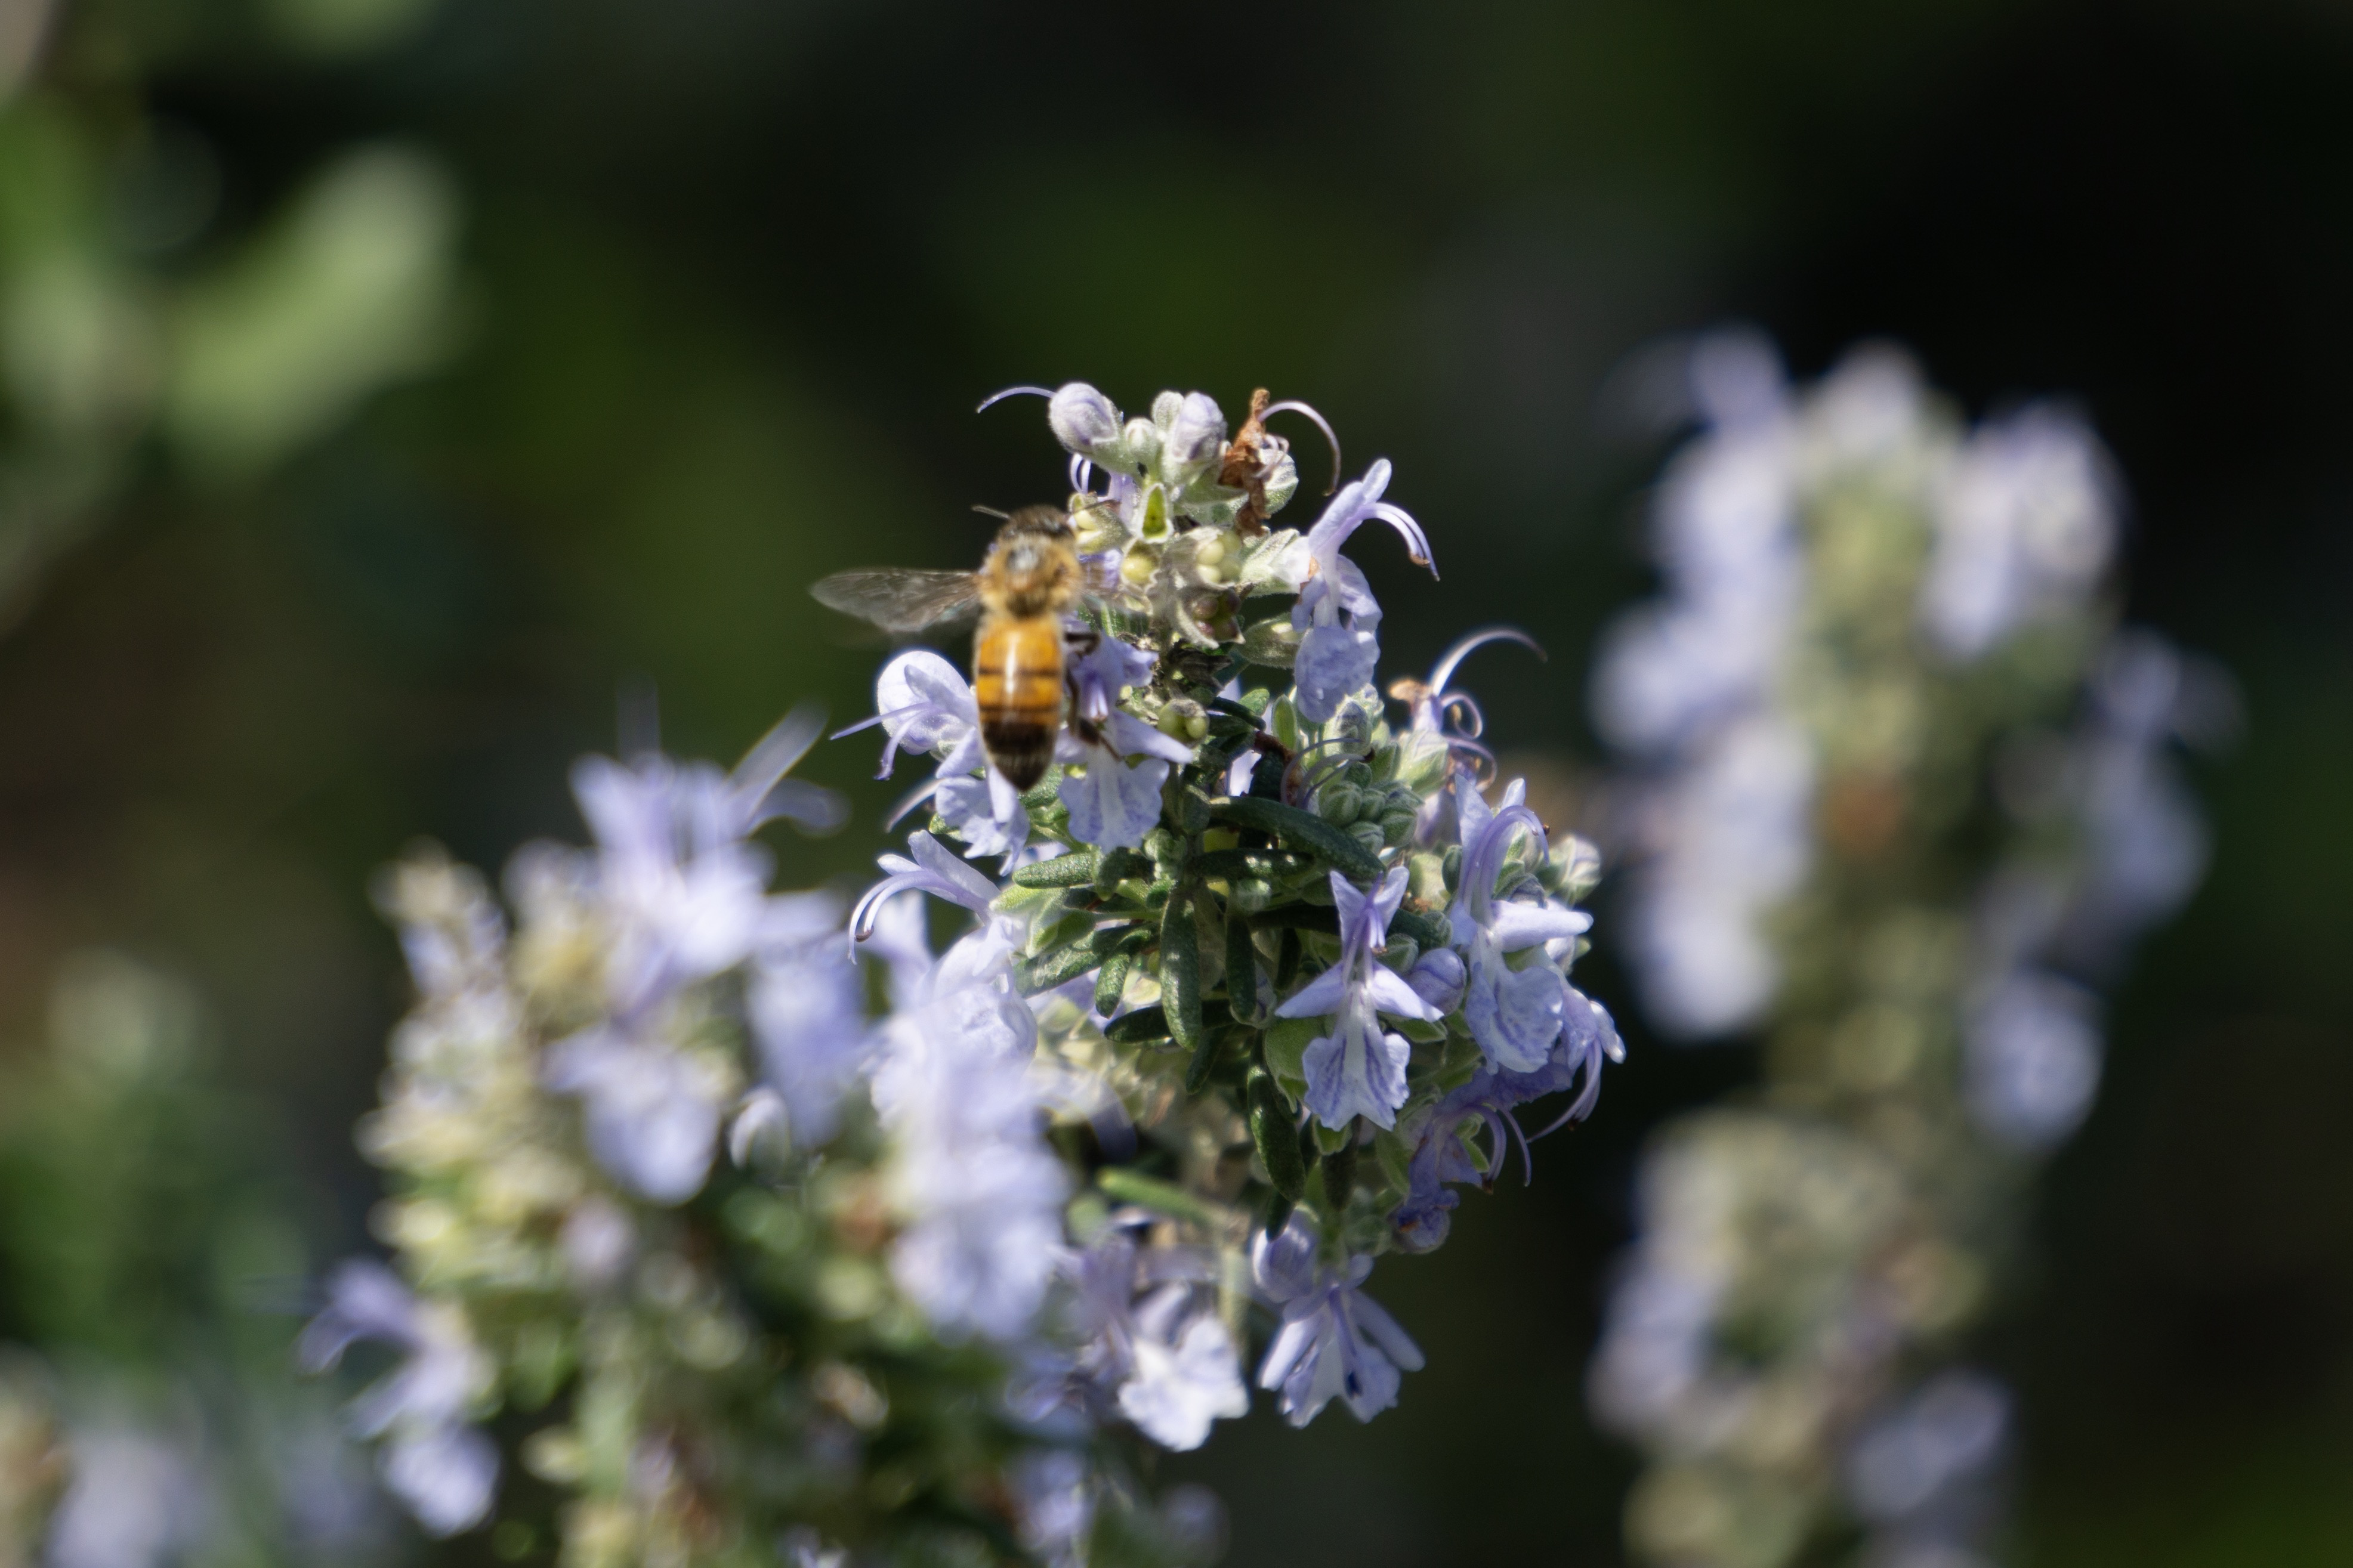 ITAP of a bee#PHOTO #CAPTURE #NATURE #INCREDIBLE